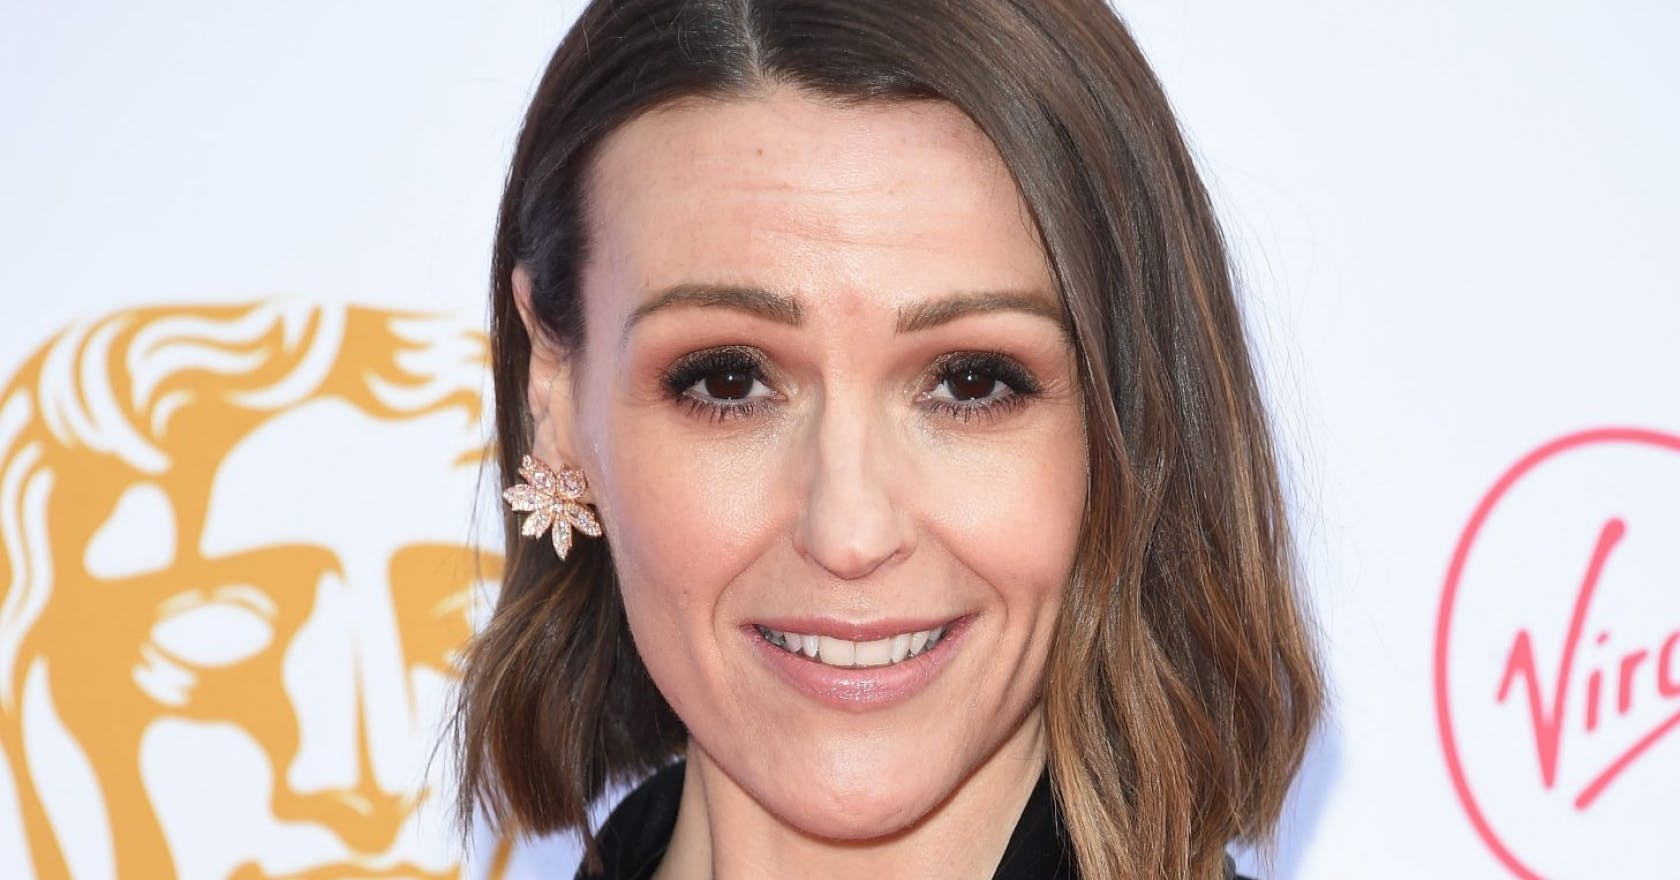 Suranne Jones just made a relatable case for self-love and kindness